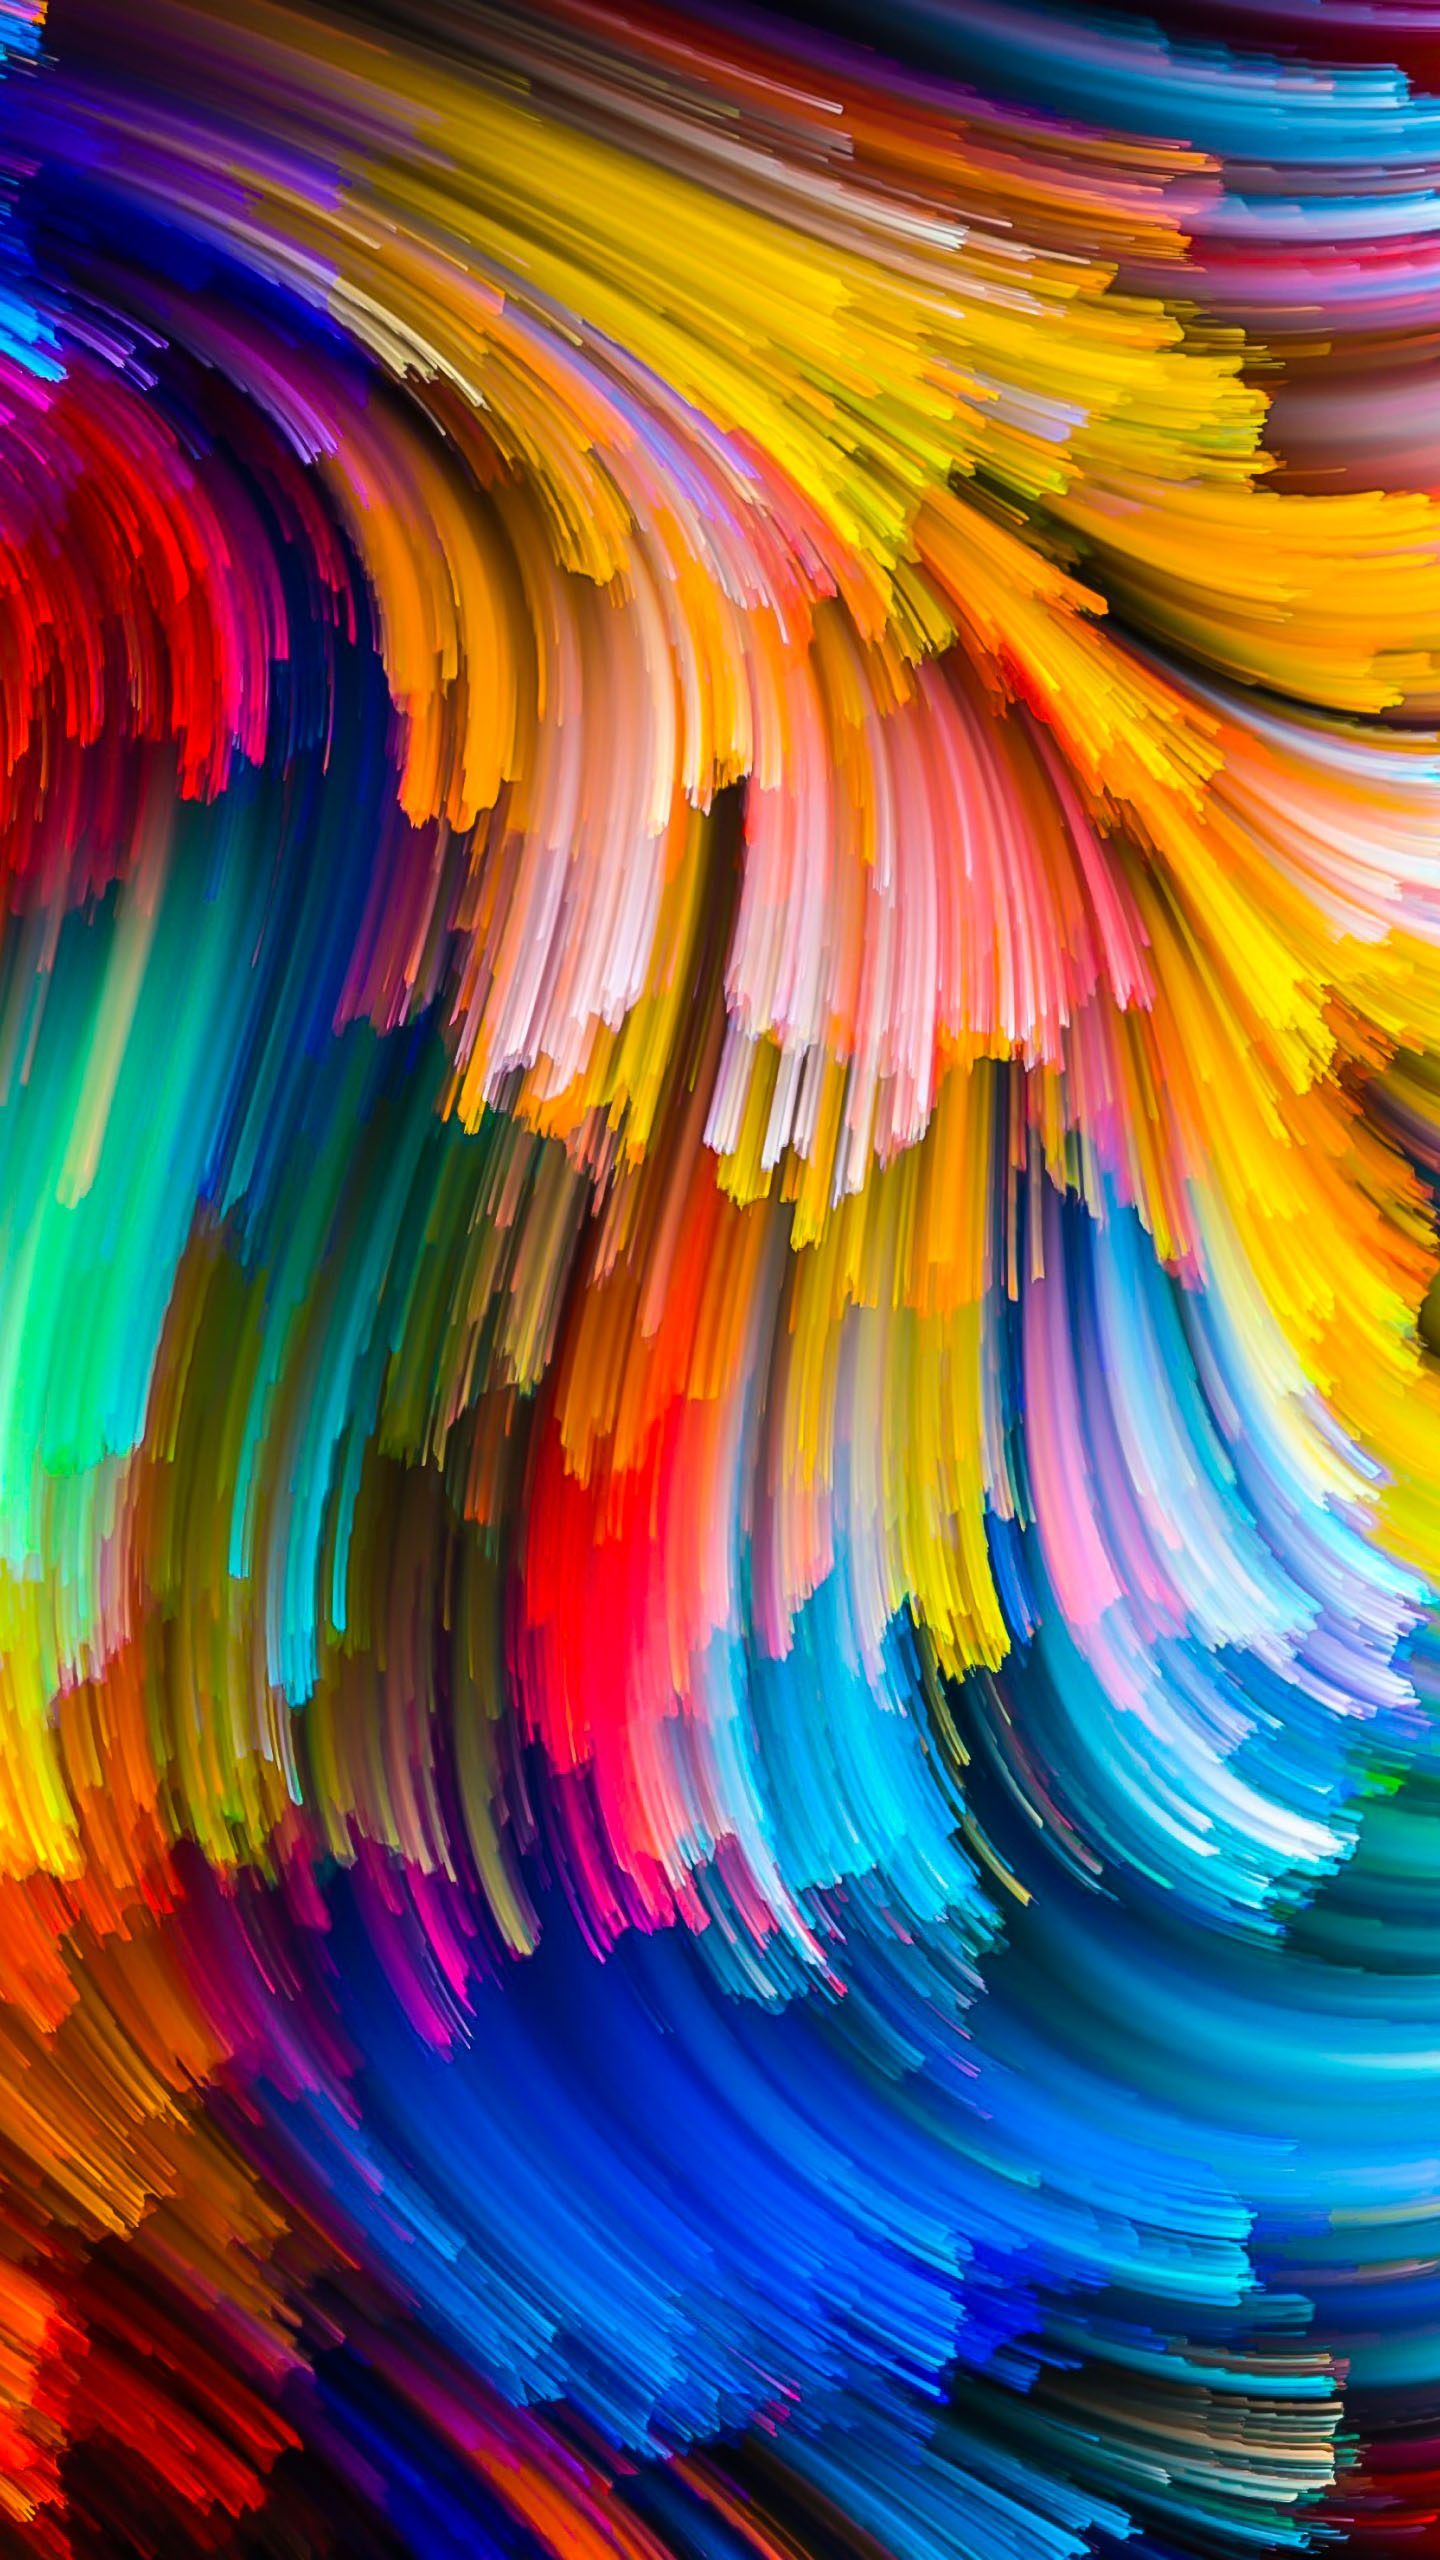 Abstract Pattern Colorful 4k Wallpaper - Colorful 4k - HD Wallpaper